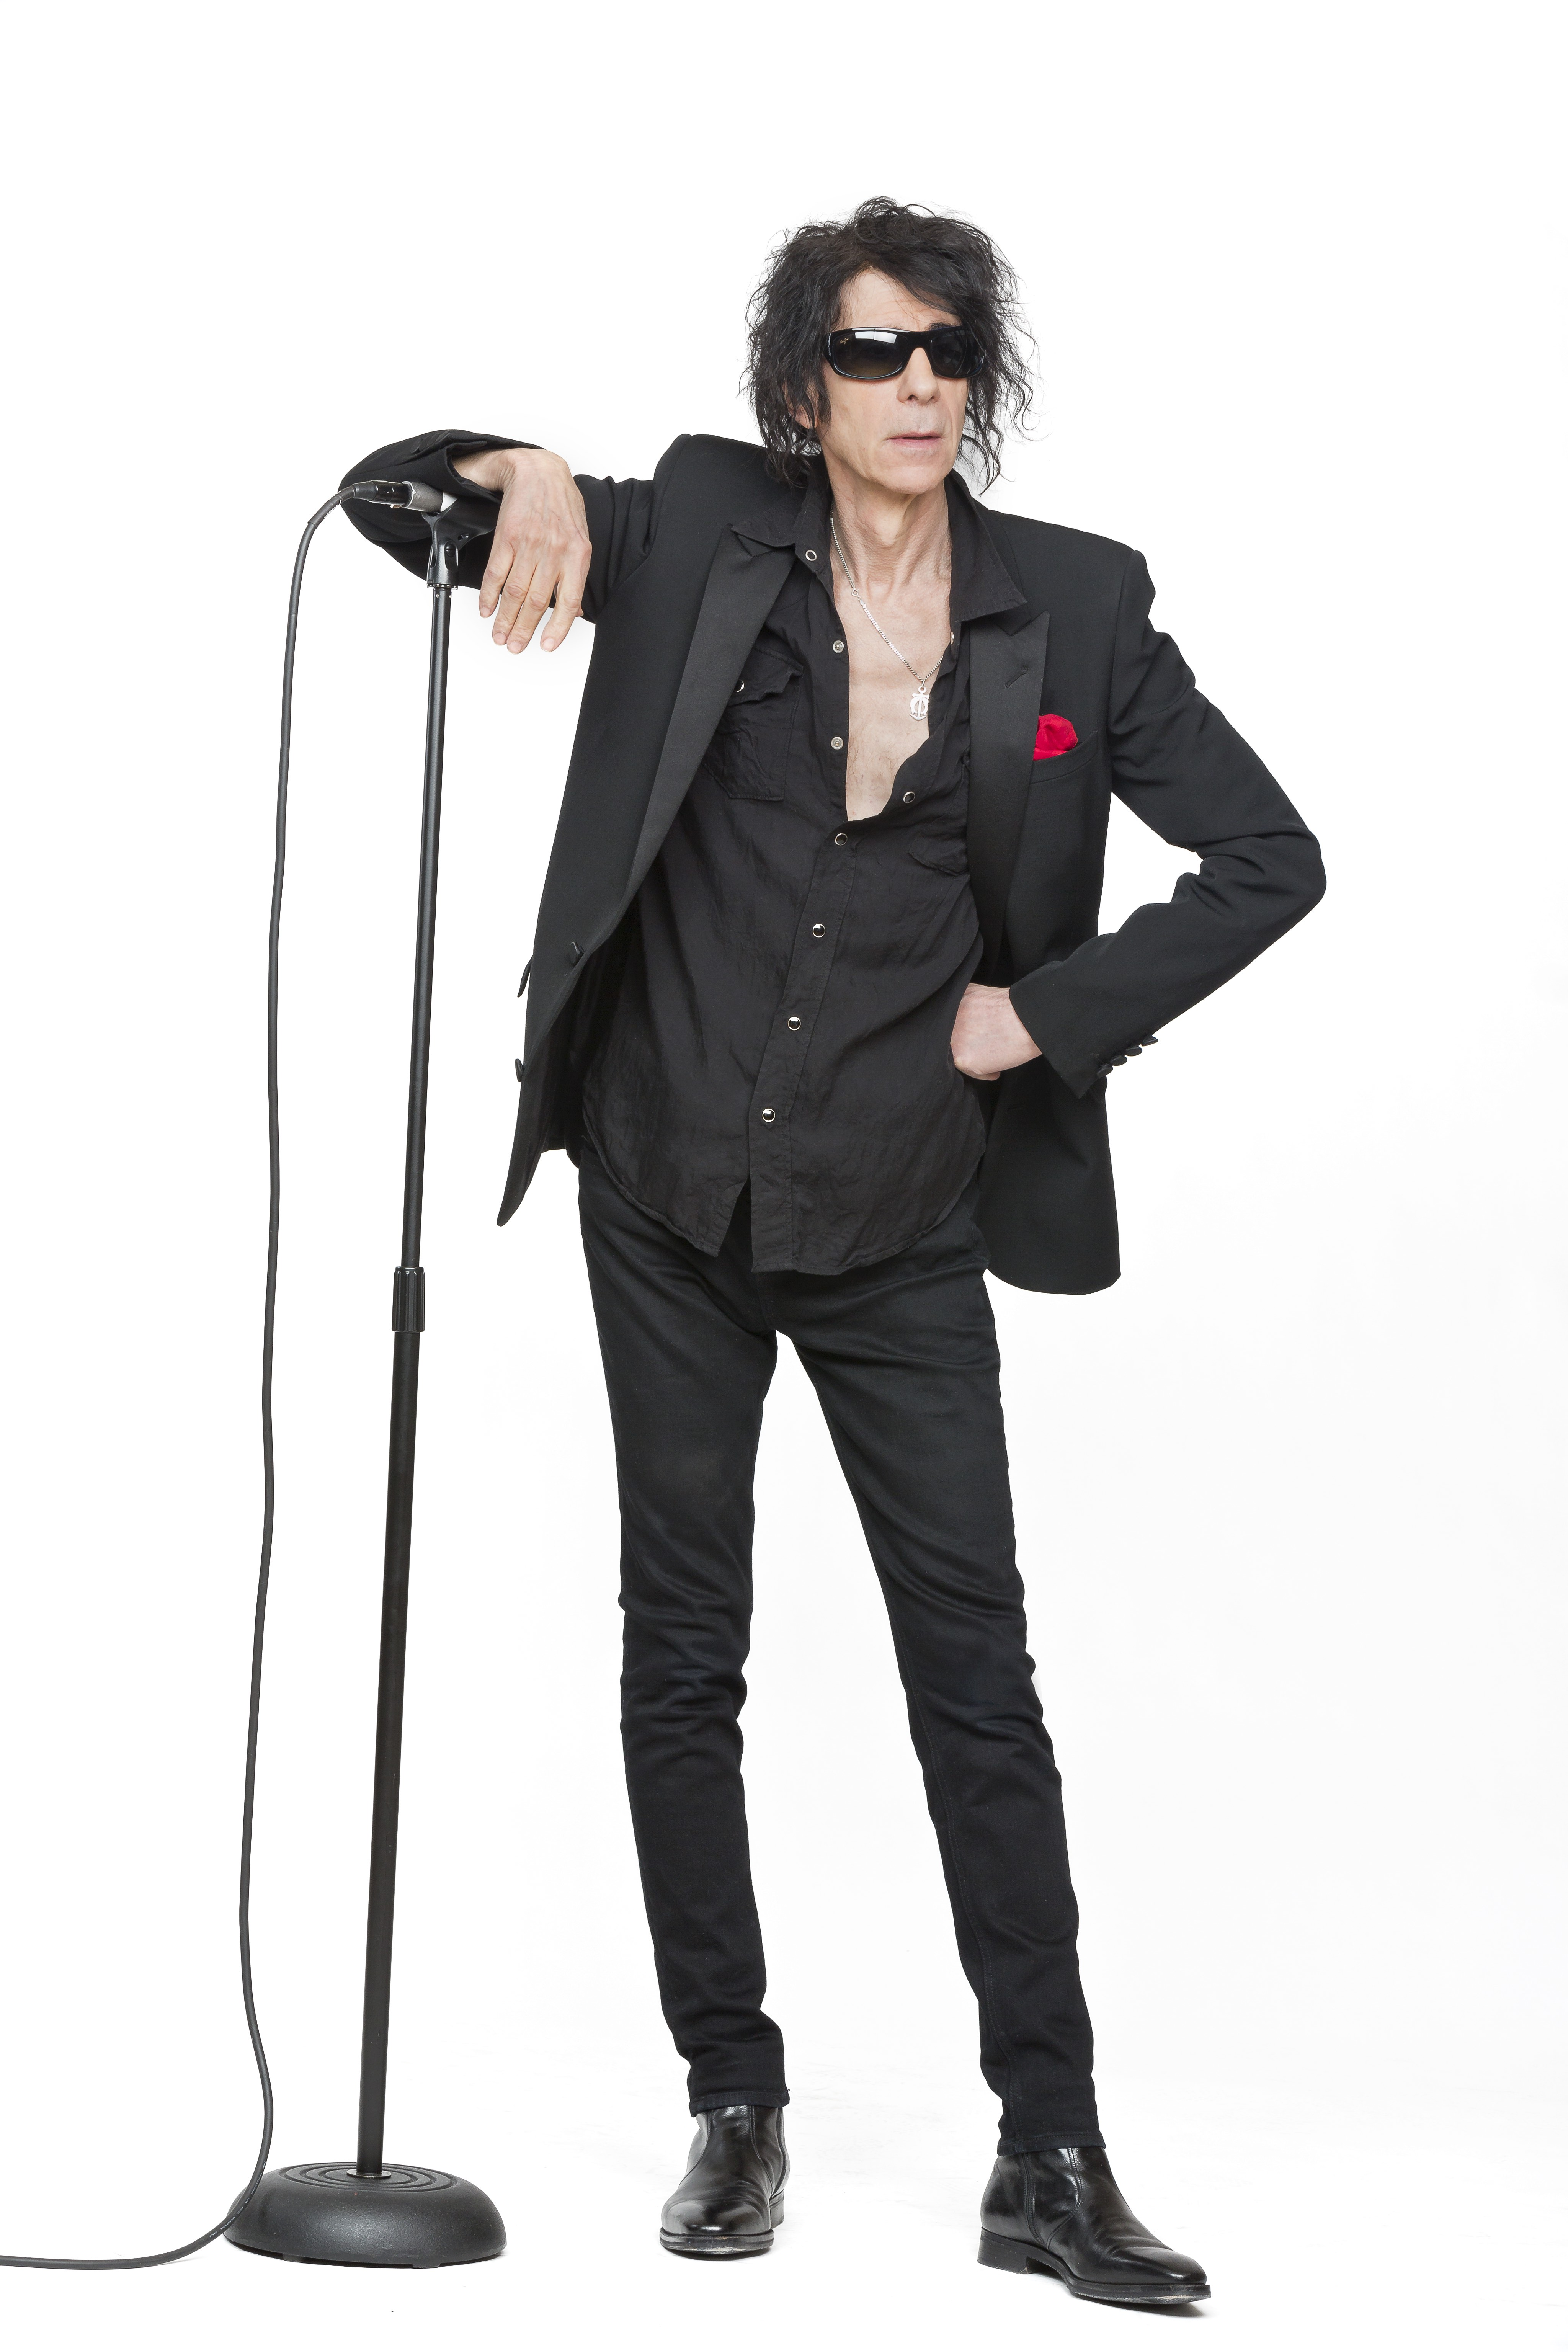 04143473b J. Geils Band singer Peter Wolf discusses the making of his rootsy new LP